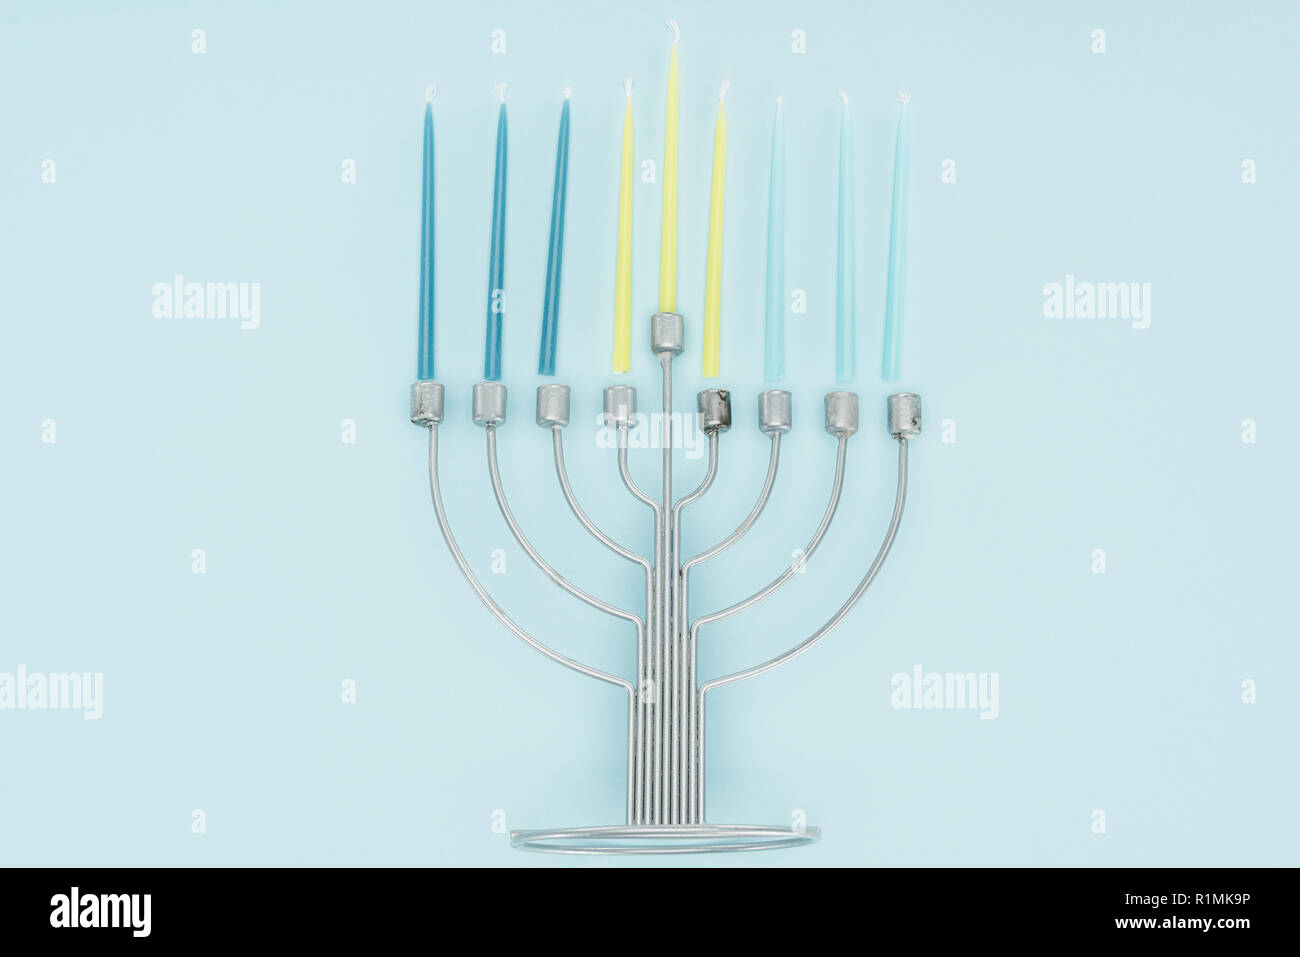 top view of menorah and candles on blue background, hannukah celebration concept - Stock Image